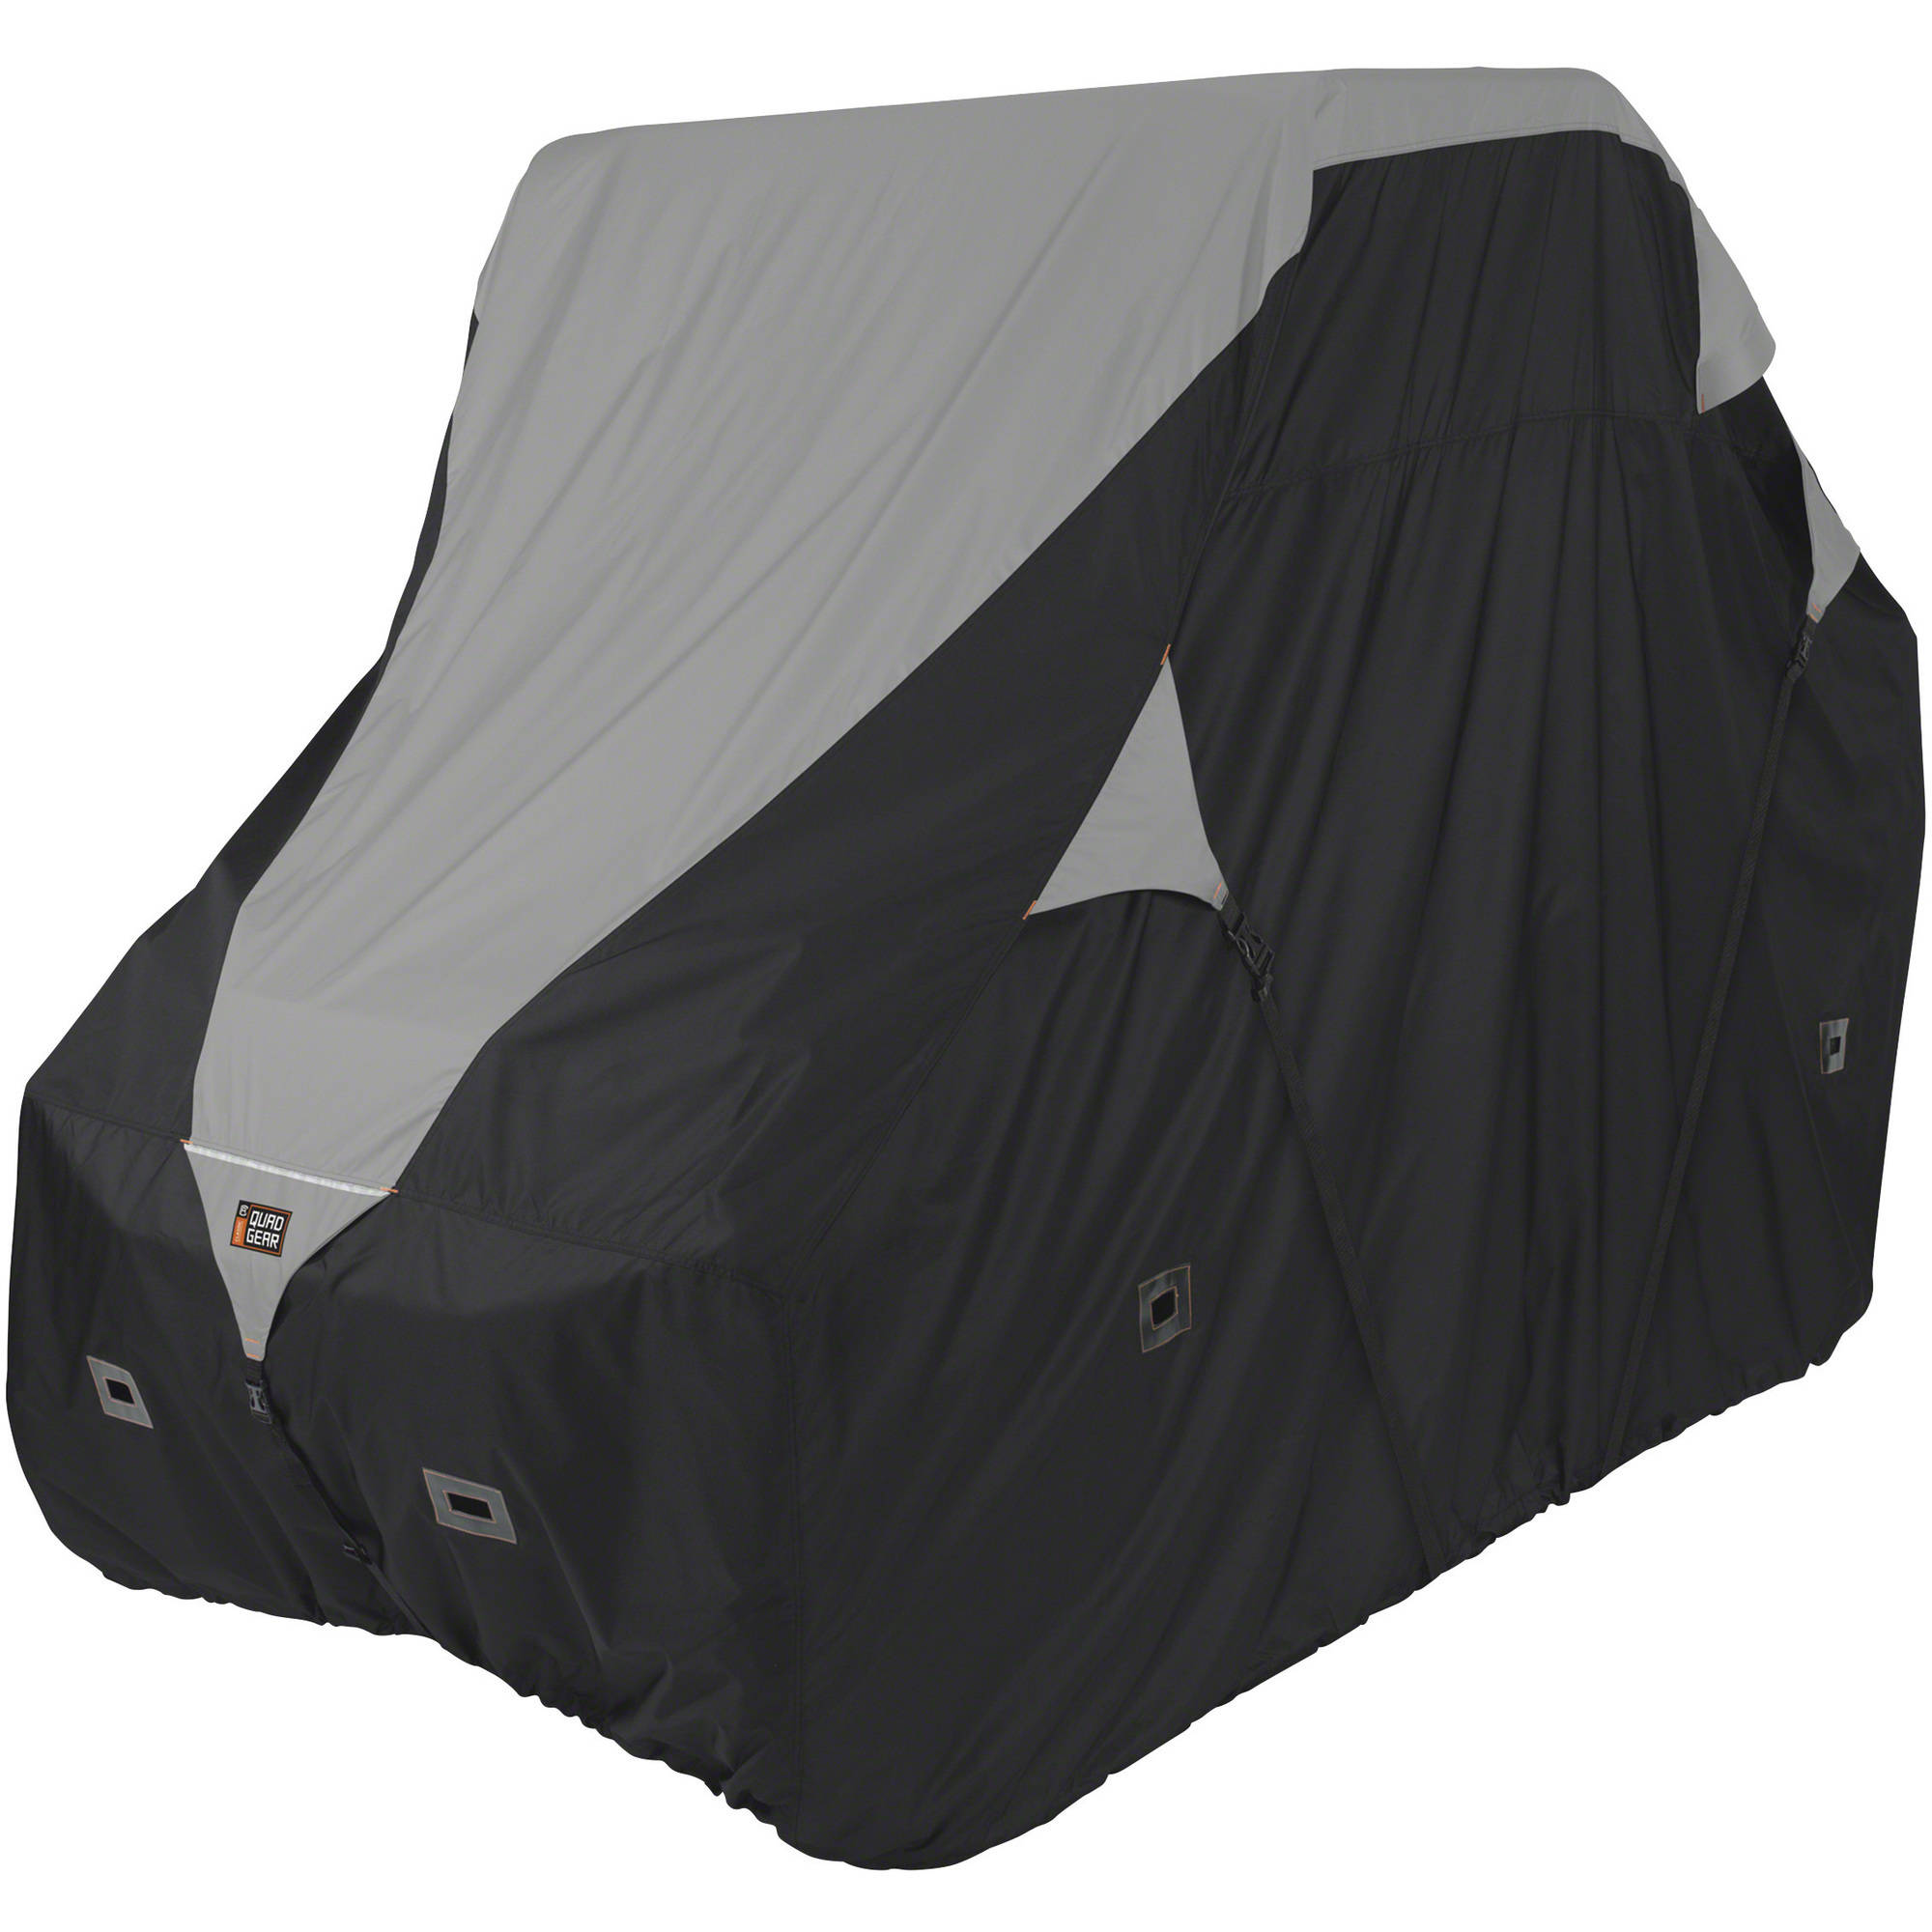 Classic Accessories Deluxe UTV Storage Cover, Black/Grey